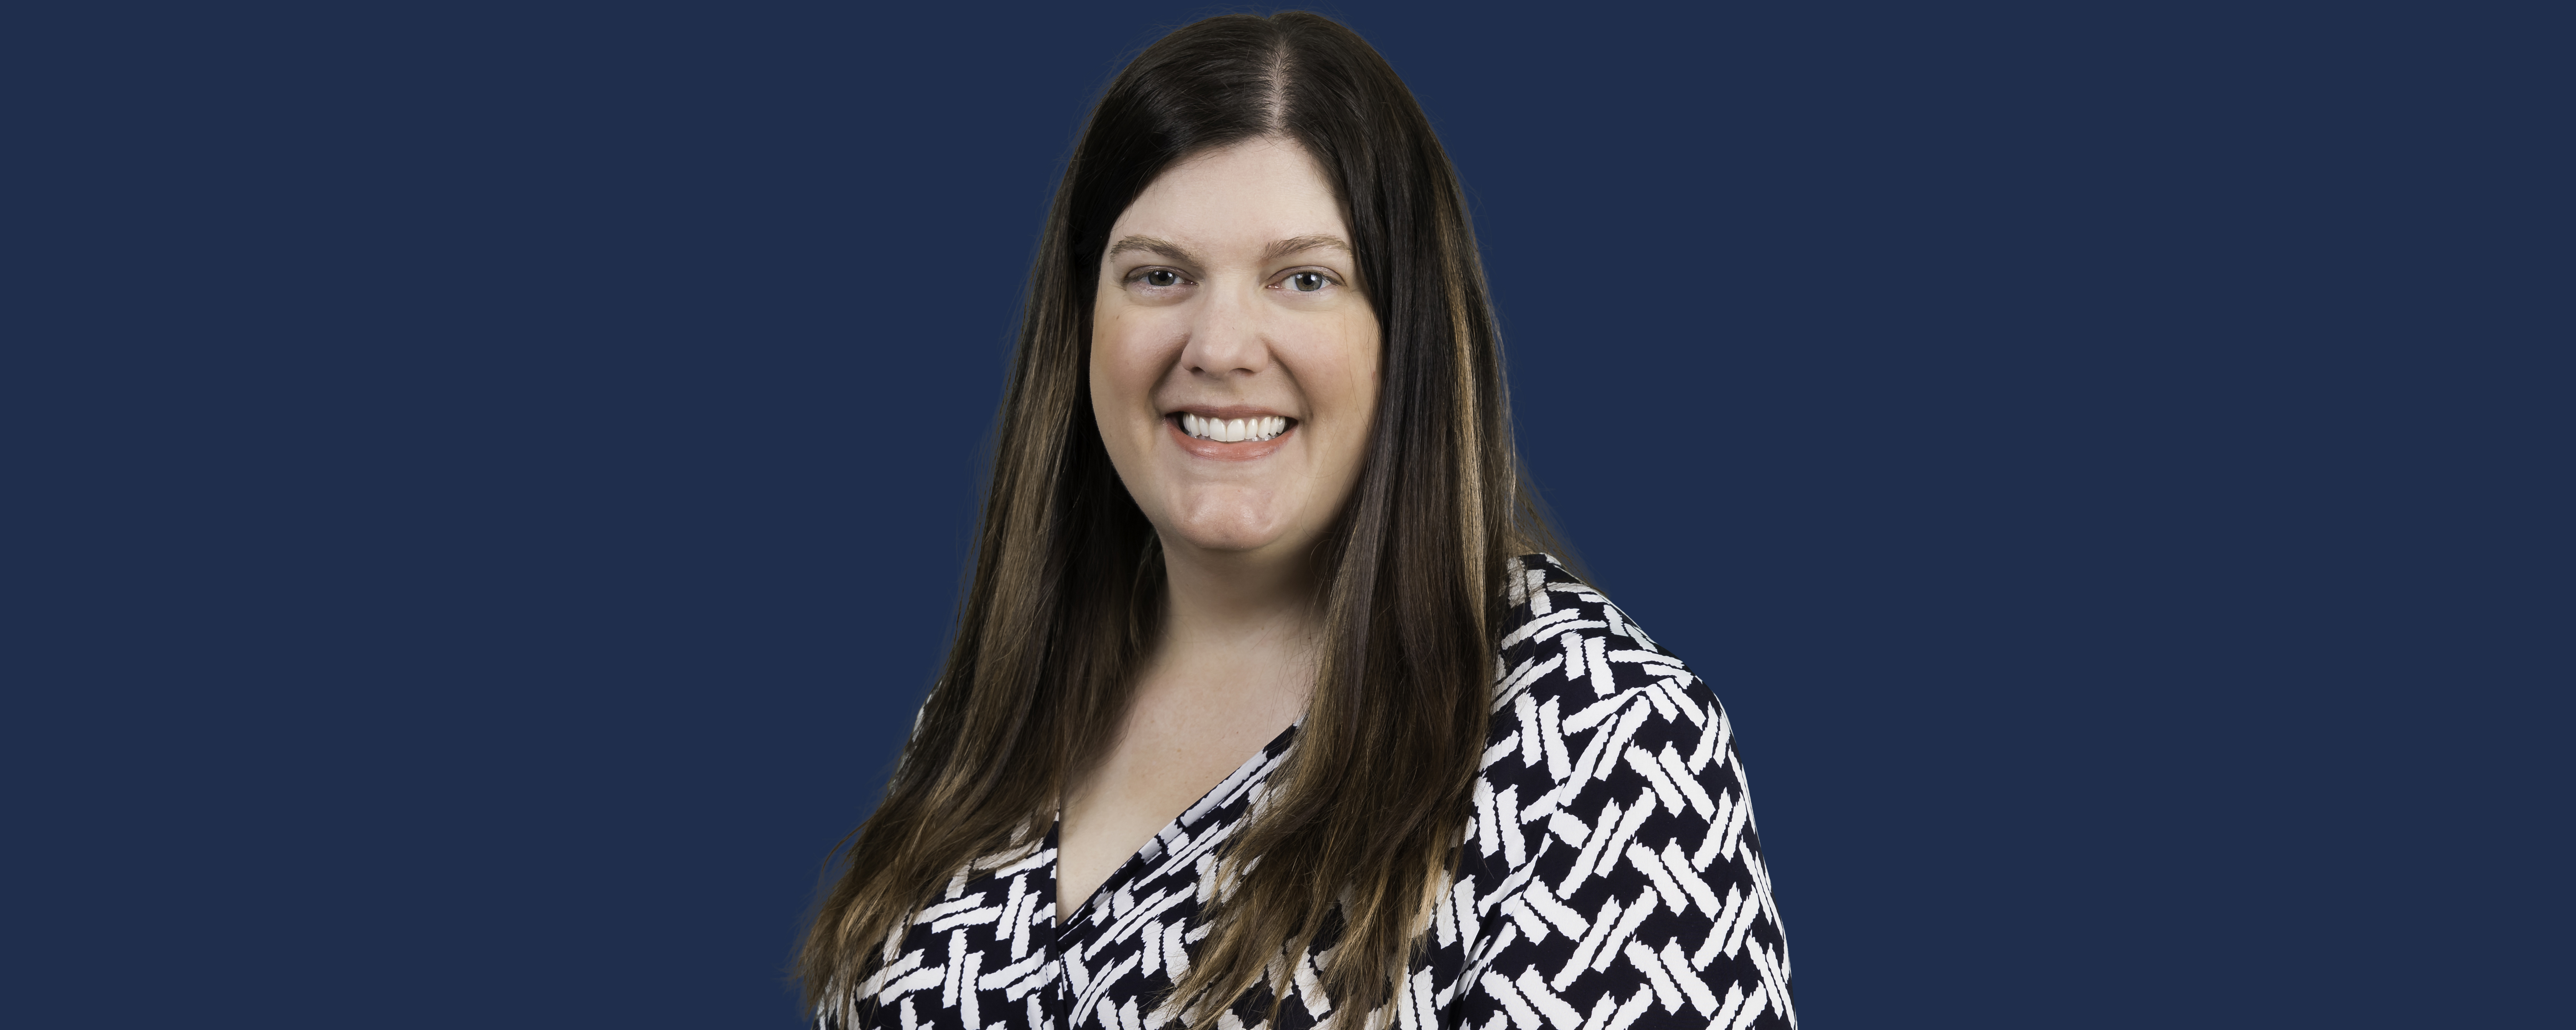 Dr. Katie Capistran, Assistant Professor, School of Occupational Therapy